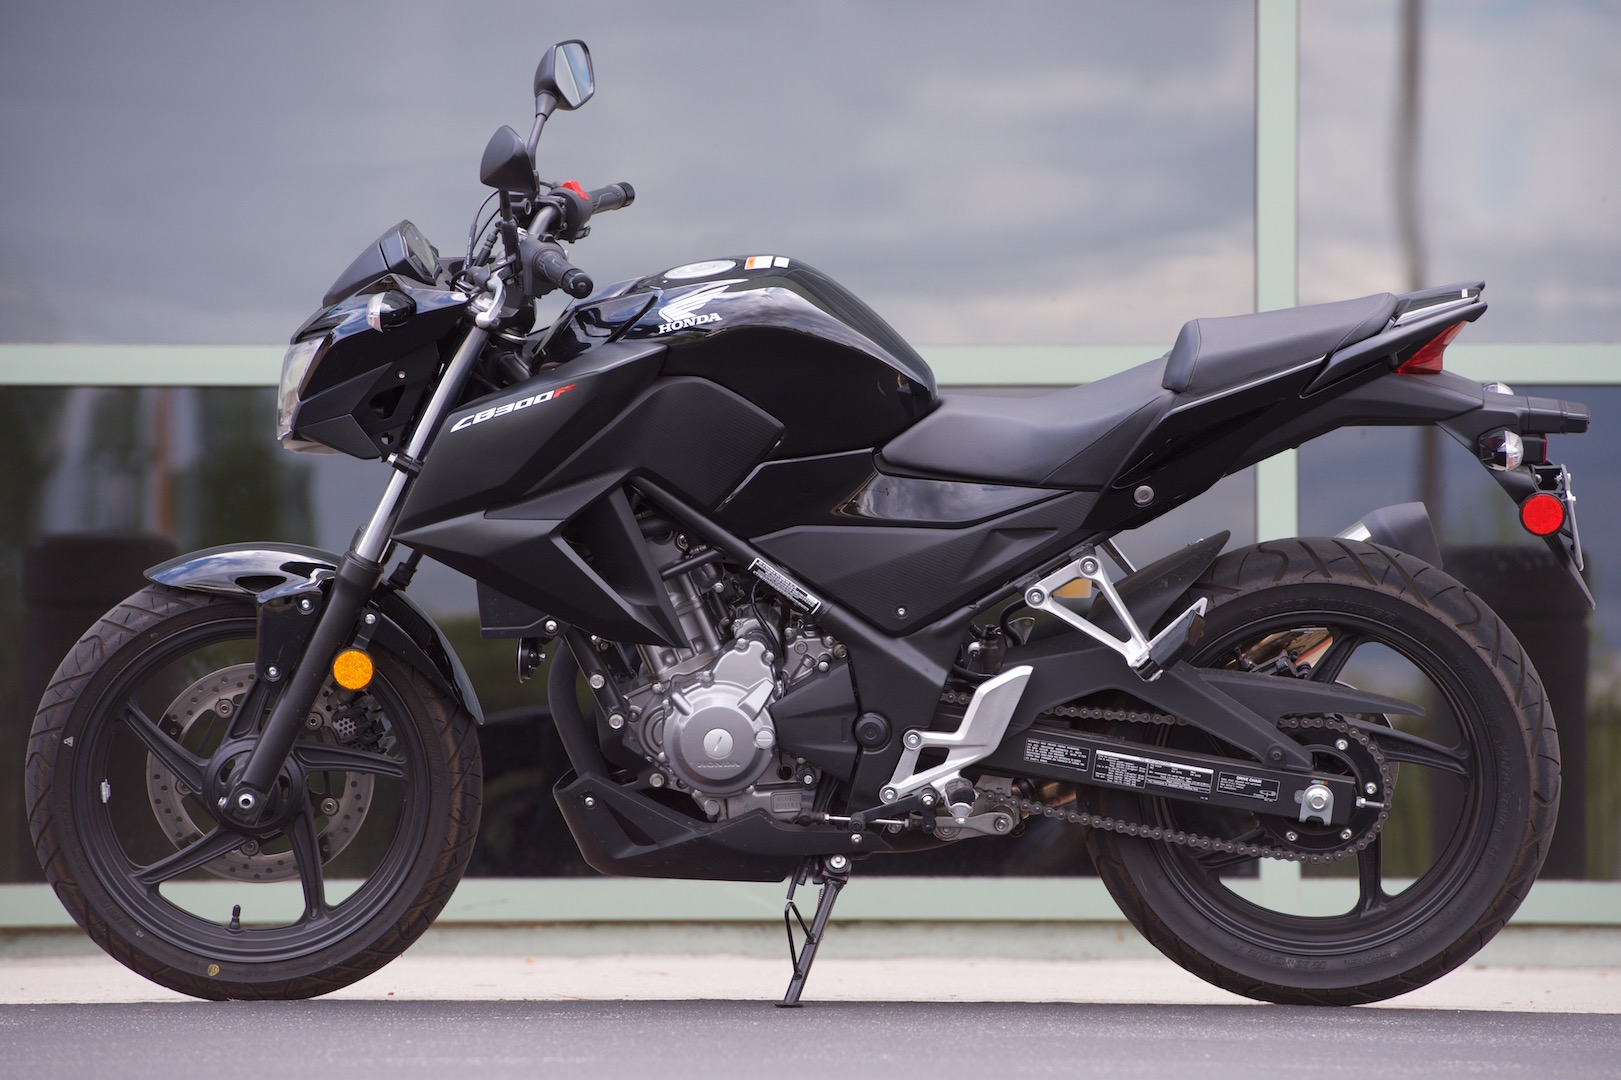 2016 Honda CB300F Review